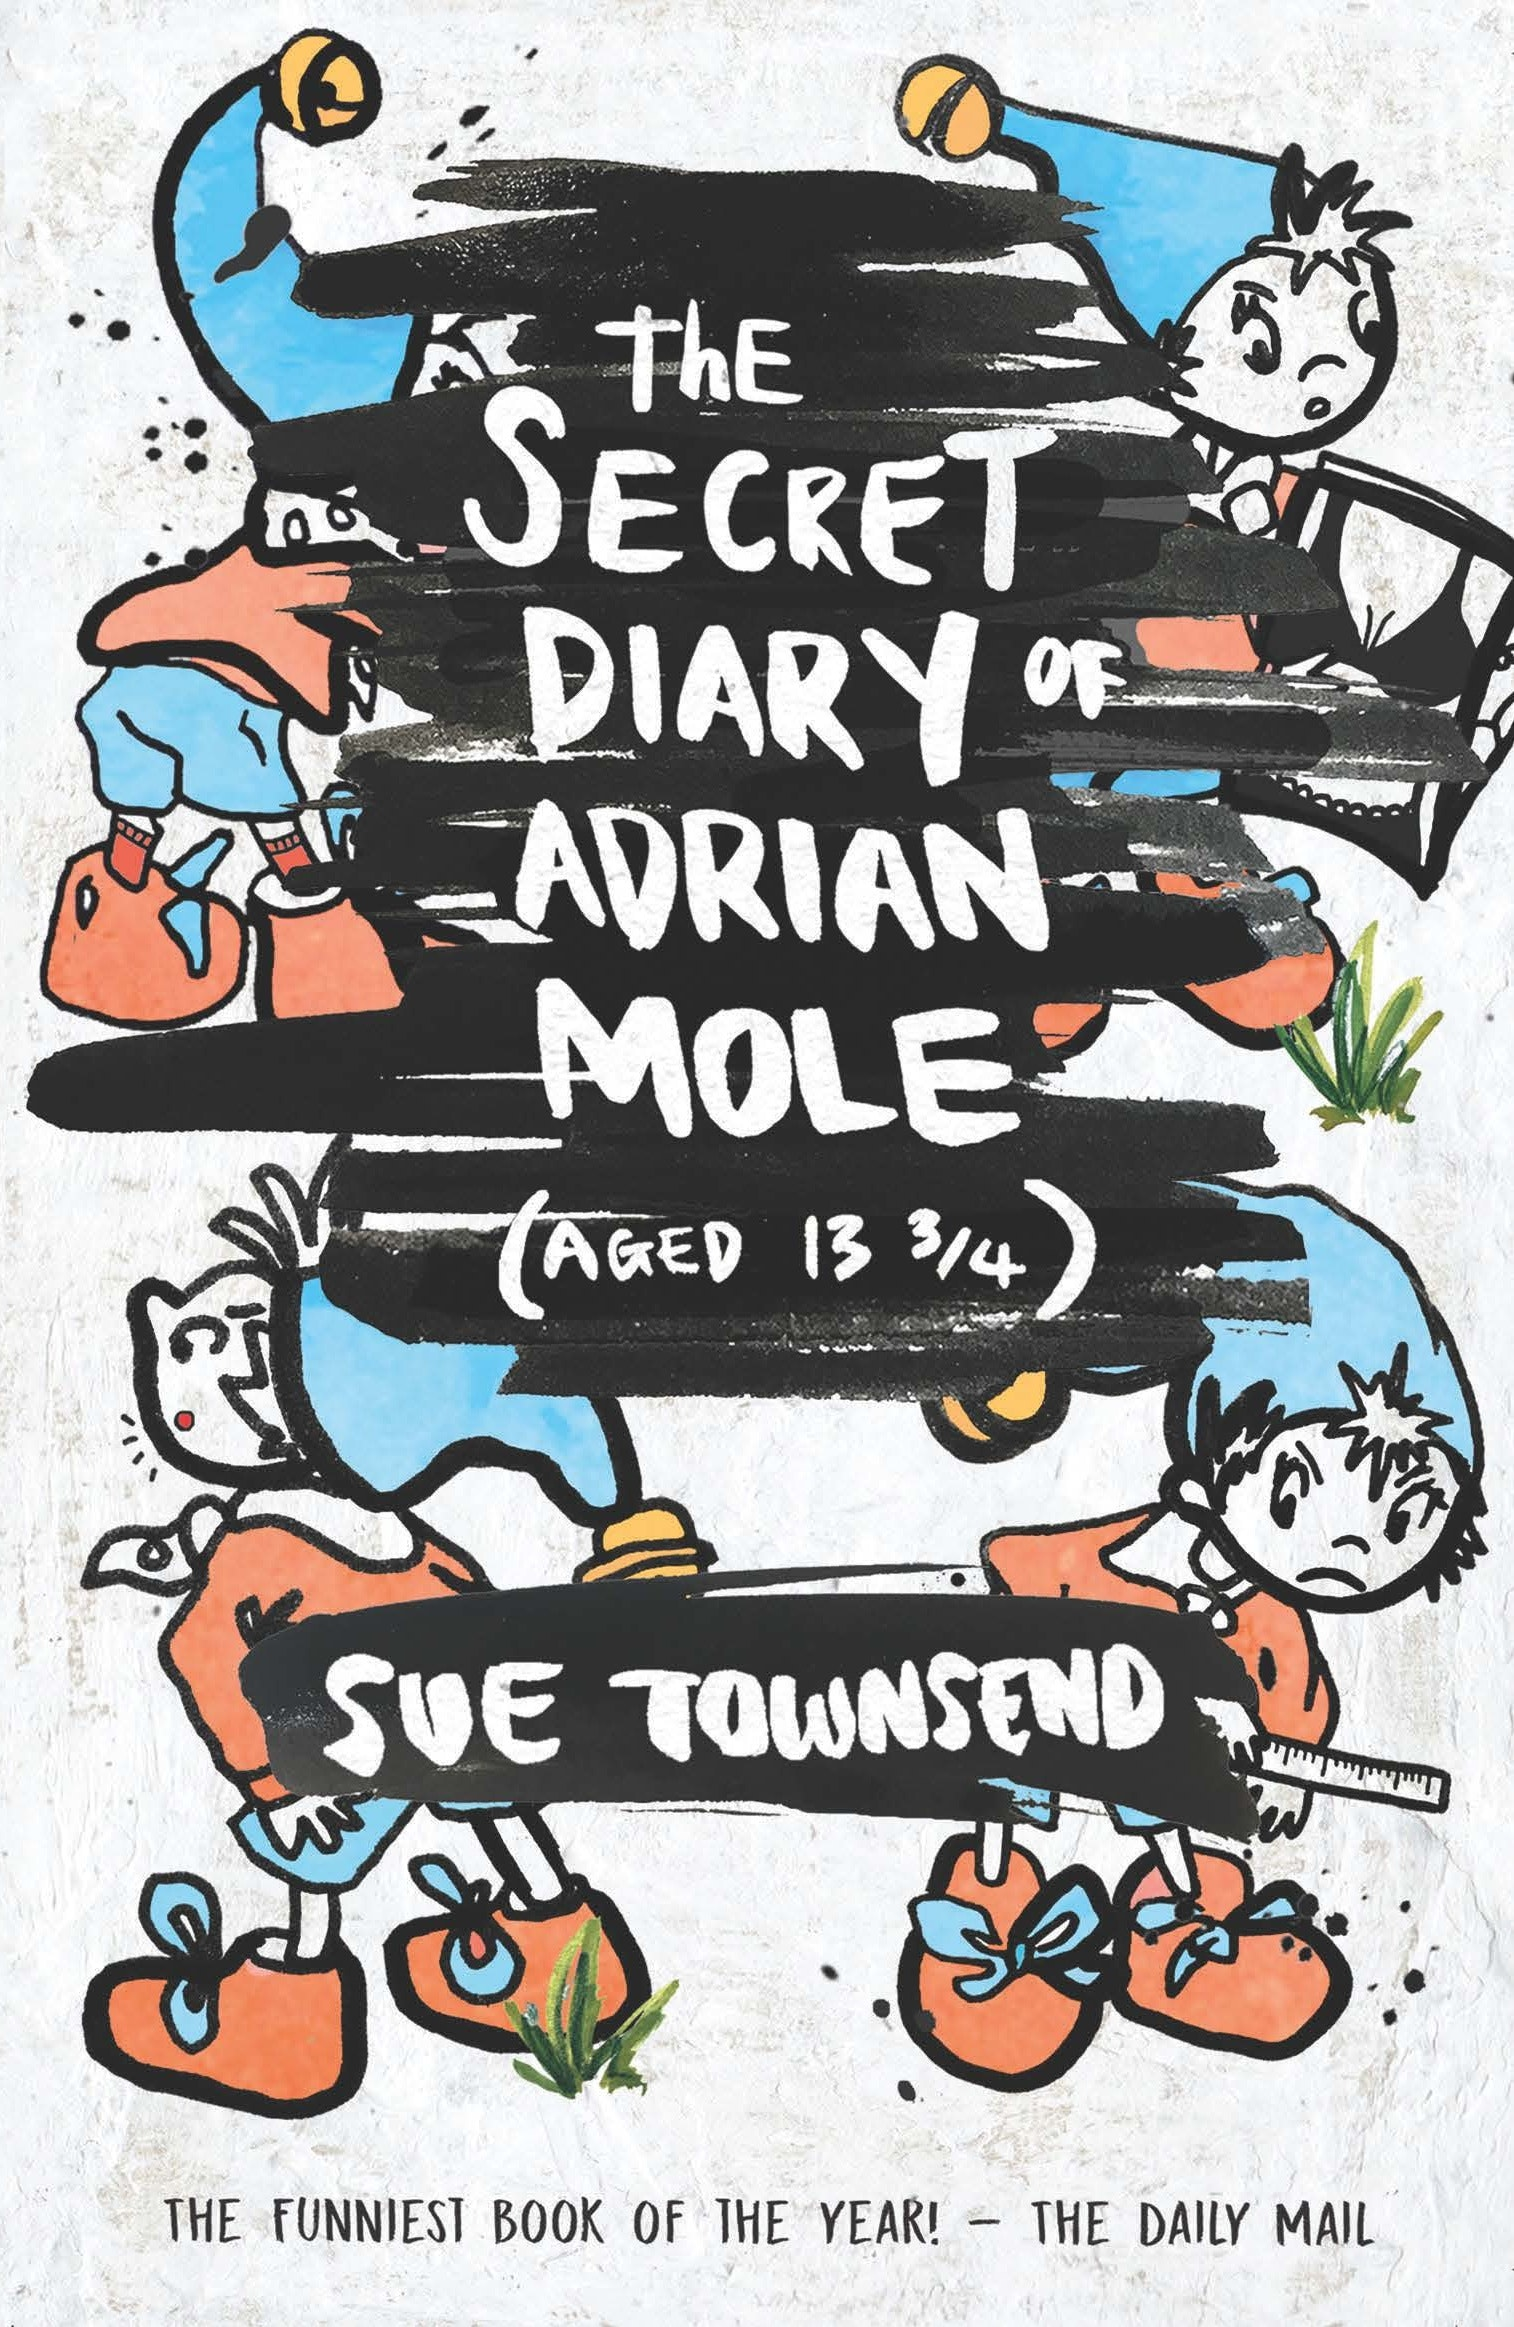 book cover design for The Secret Diary of Adrian Mole (aged 13 ¾) by Sue Townsend